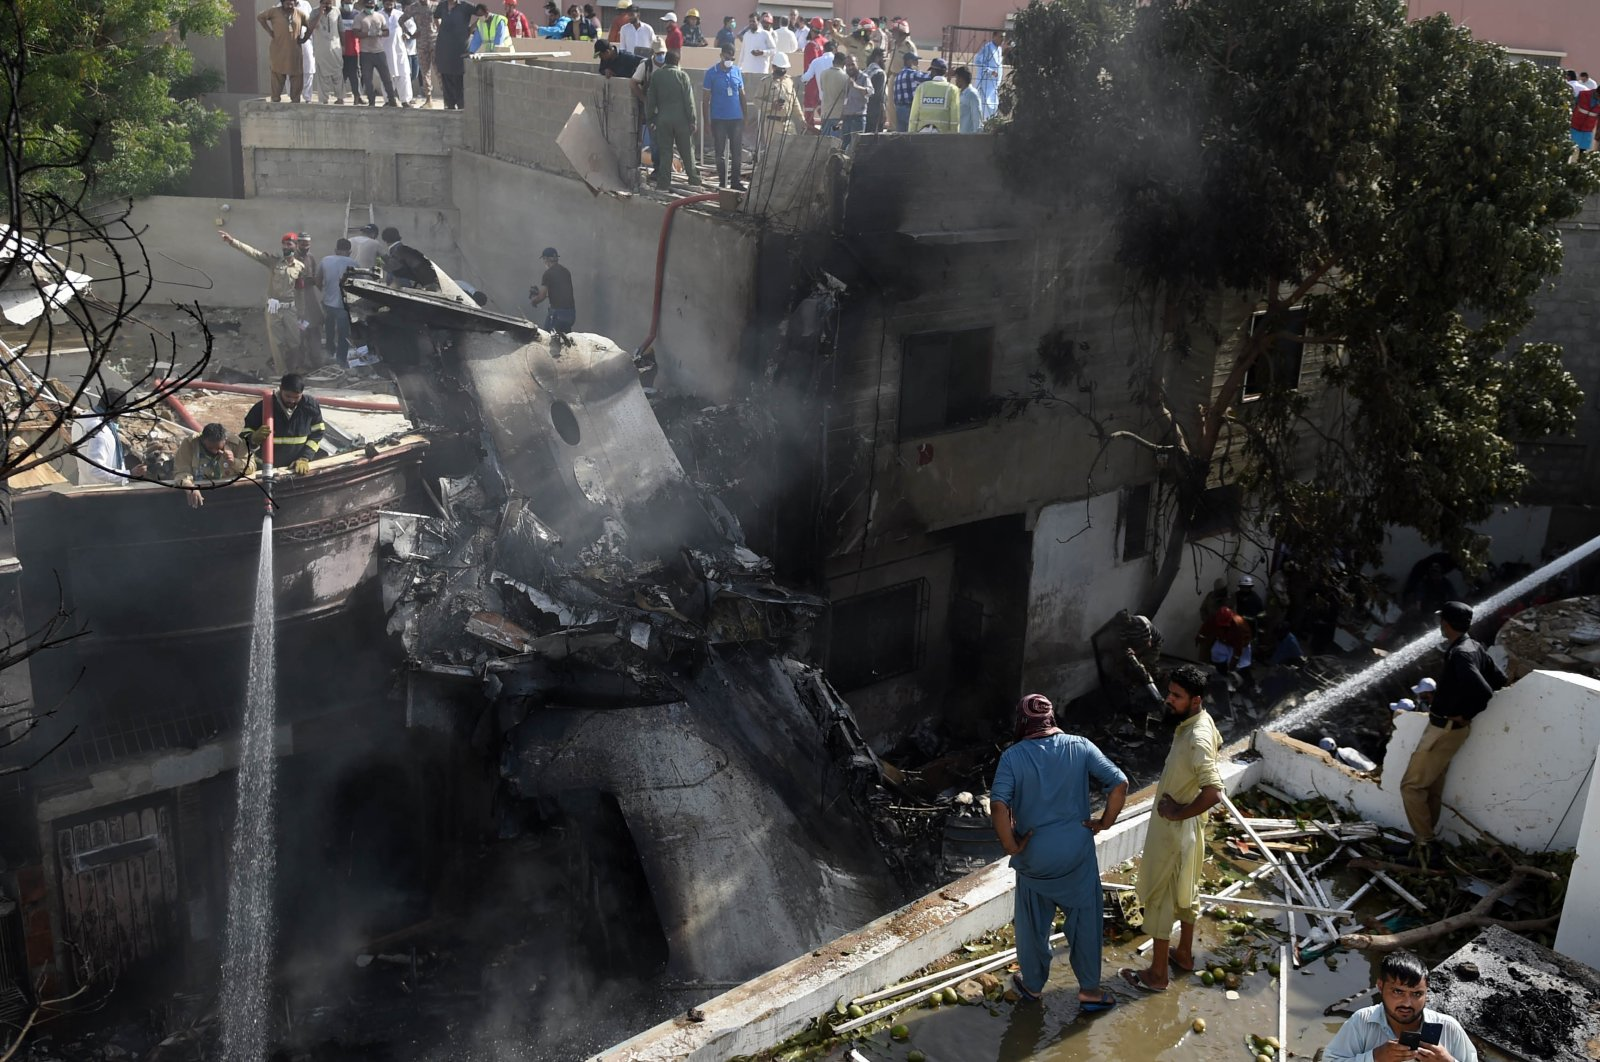 Locals inspect the wreckage of a passenger plane of state-run Pakistan International Airlines, at the scene after it crashed in a residential area, in Karachi, Pakistan, May 22, 2020. (EPA-EFE Photo)